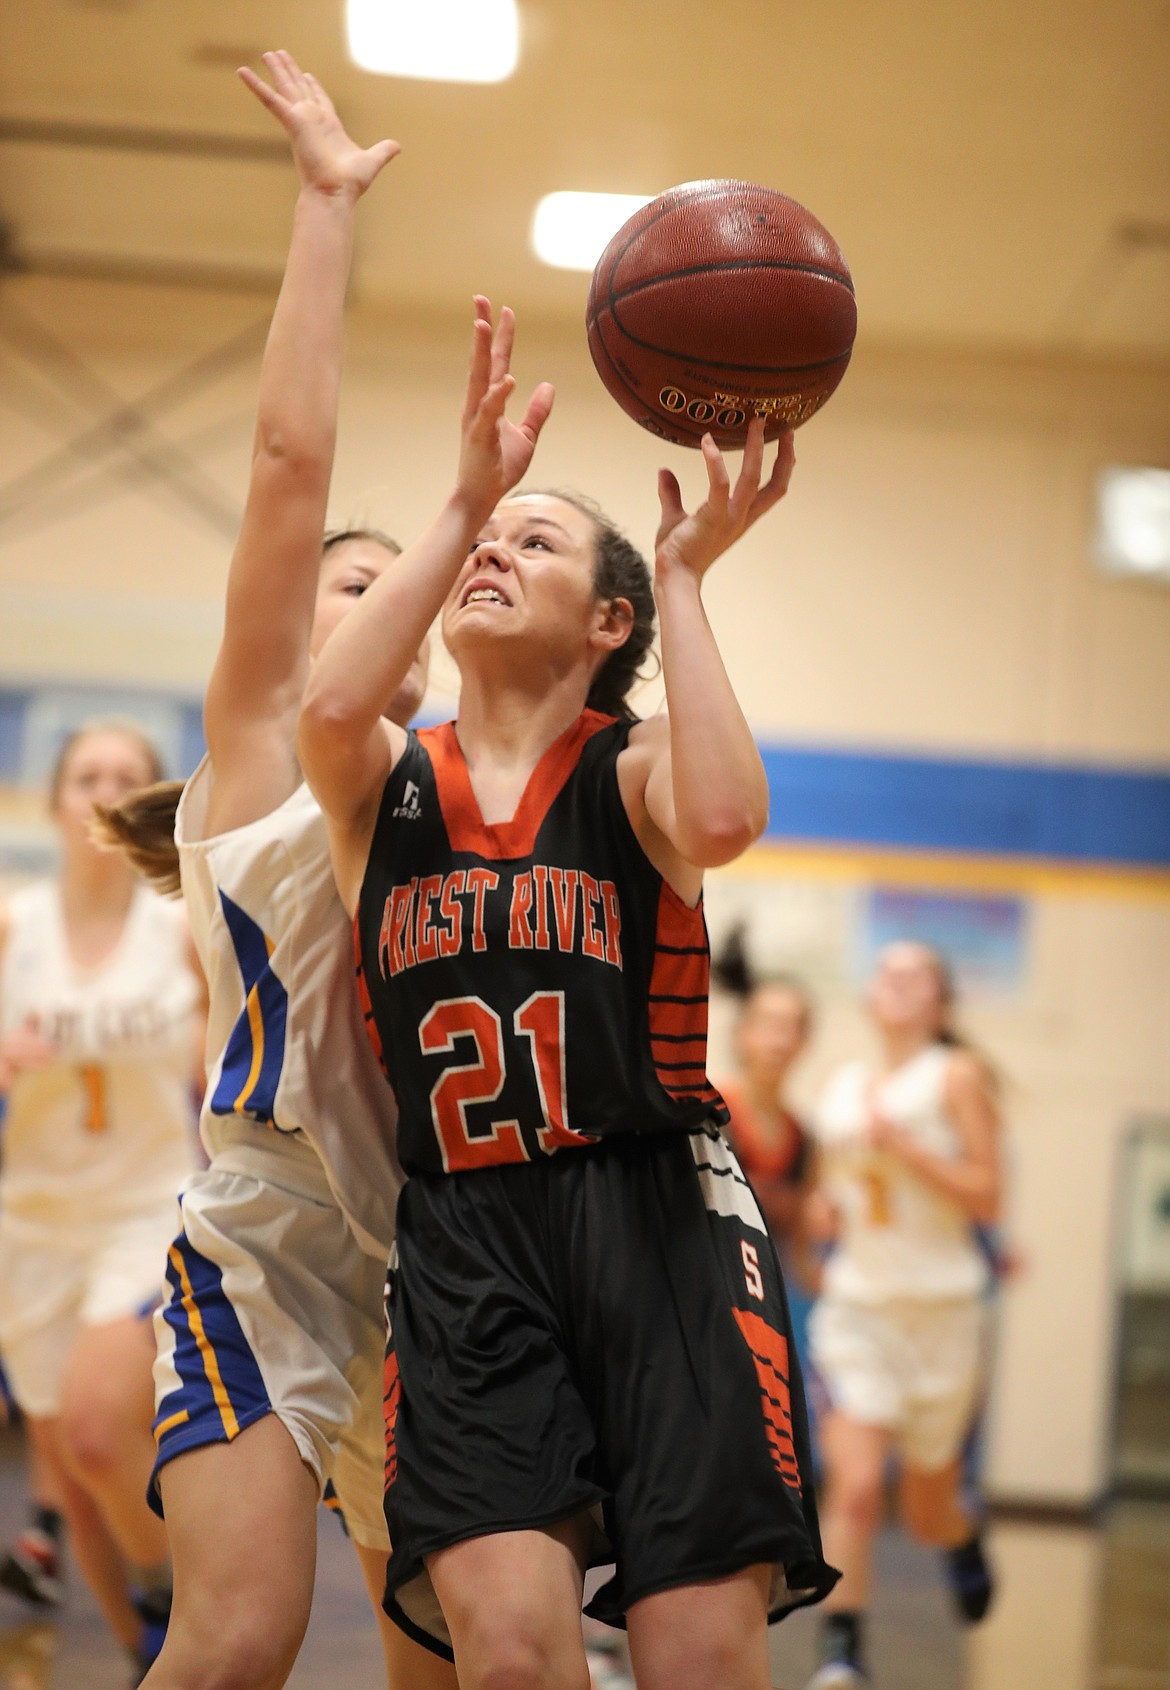 Priest River senior Hannah Palfrey (right) fights to put up a shot over Clark Fork's Eloise Shelton.